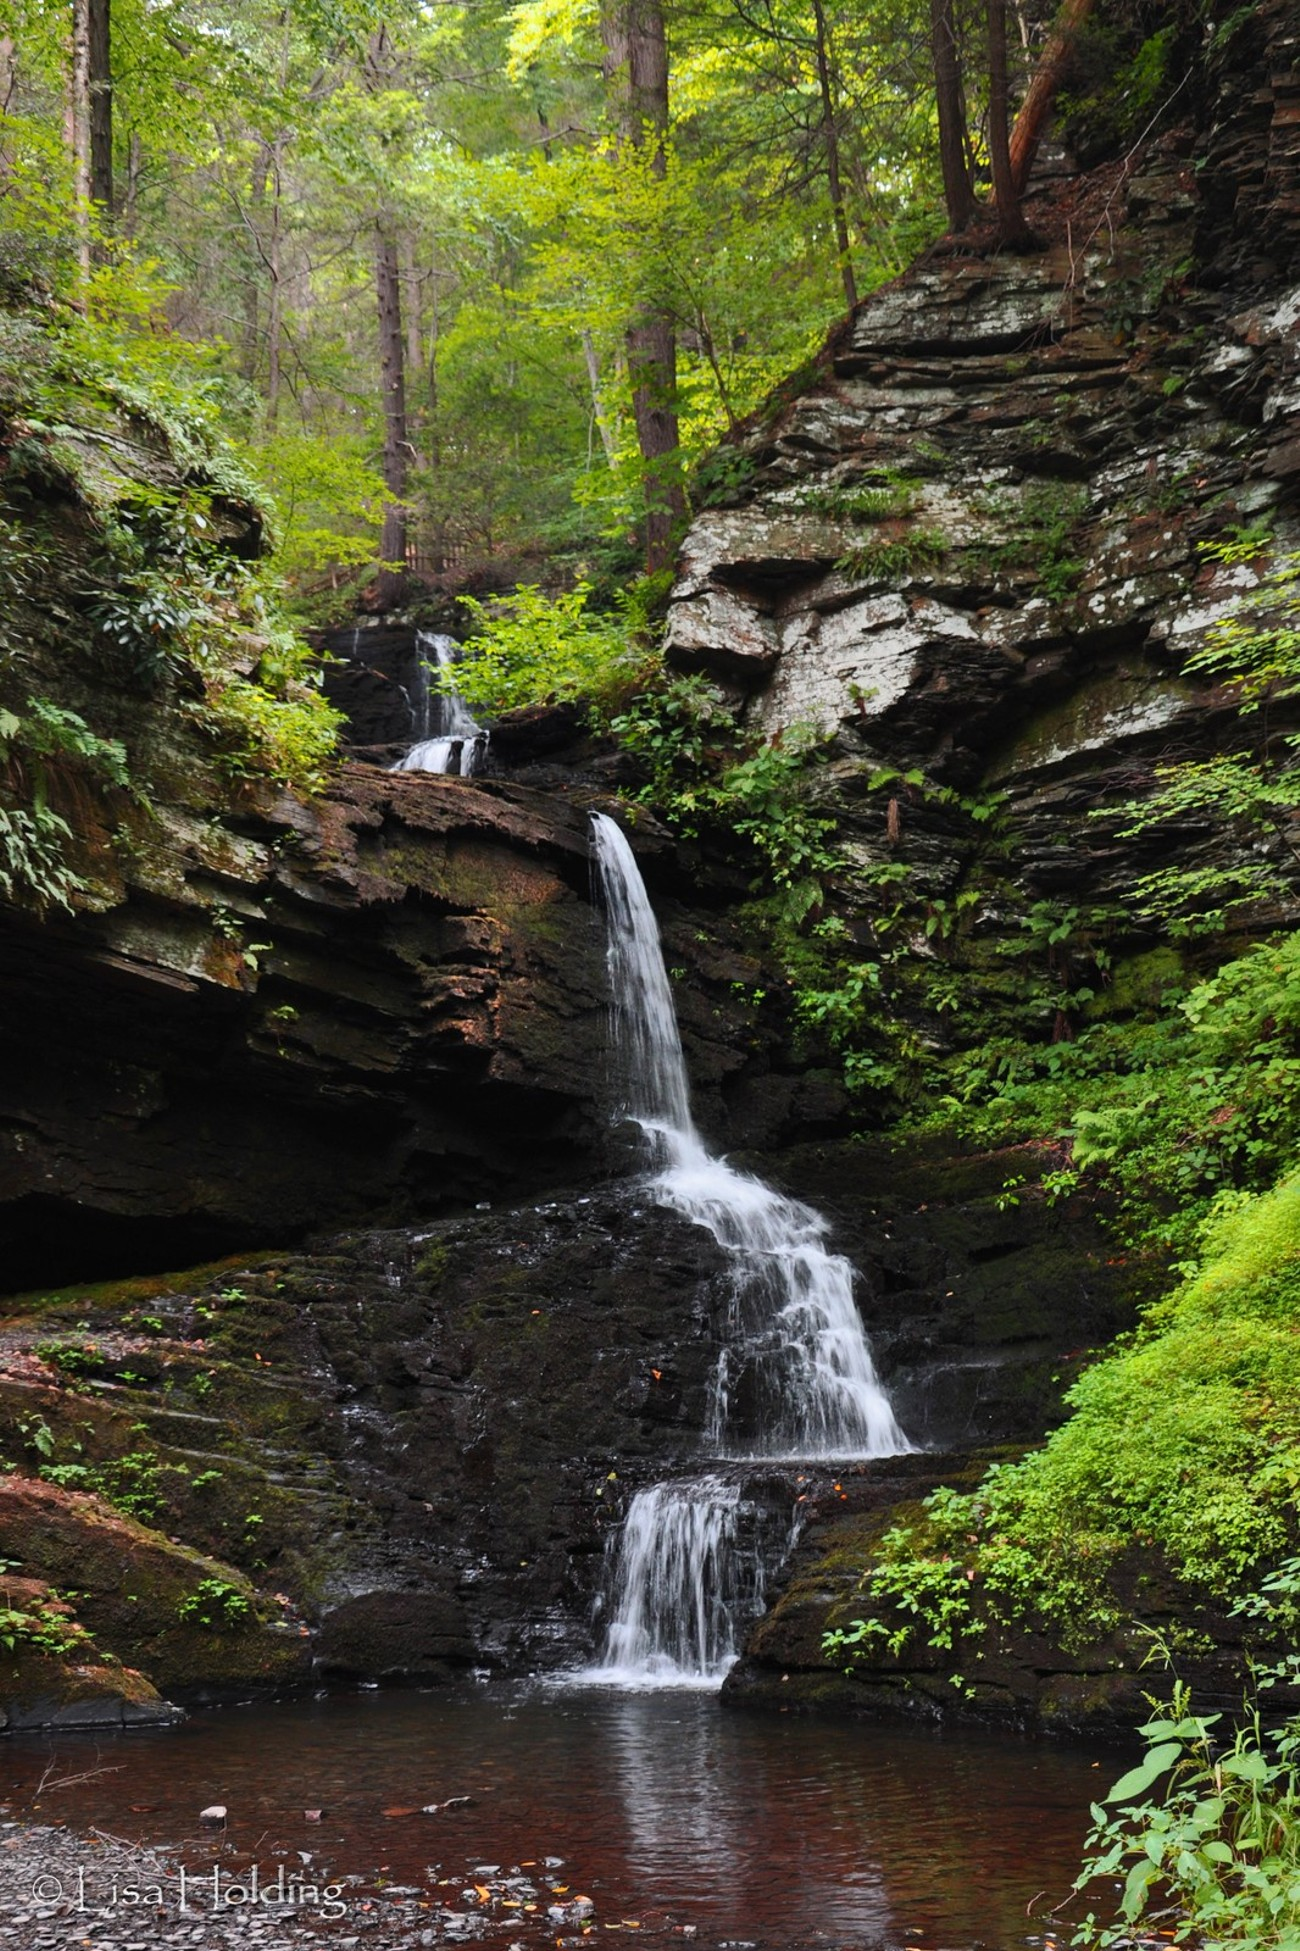 Bridesmaid Falls, at Bushkill Falls in the Pocono Mountains of PA.  Falls are usually much fuller, but the lighter flow gave the opportunity for a slightly different perspective.